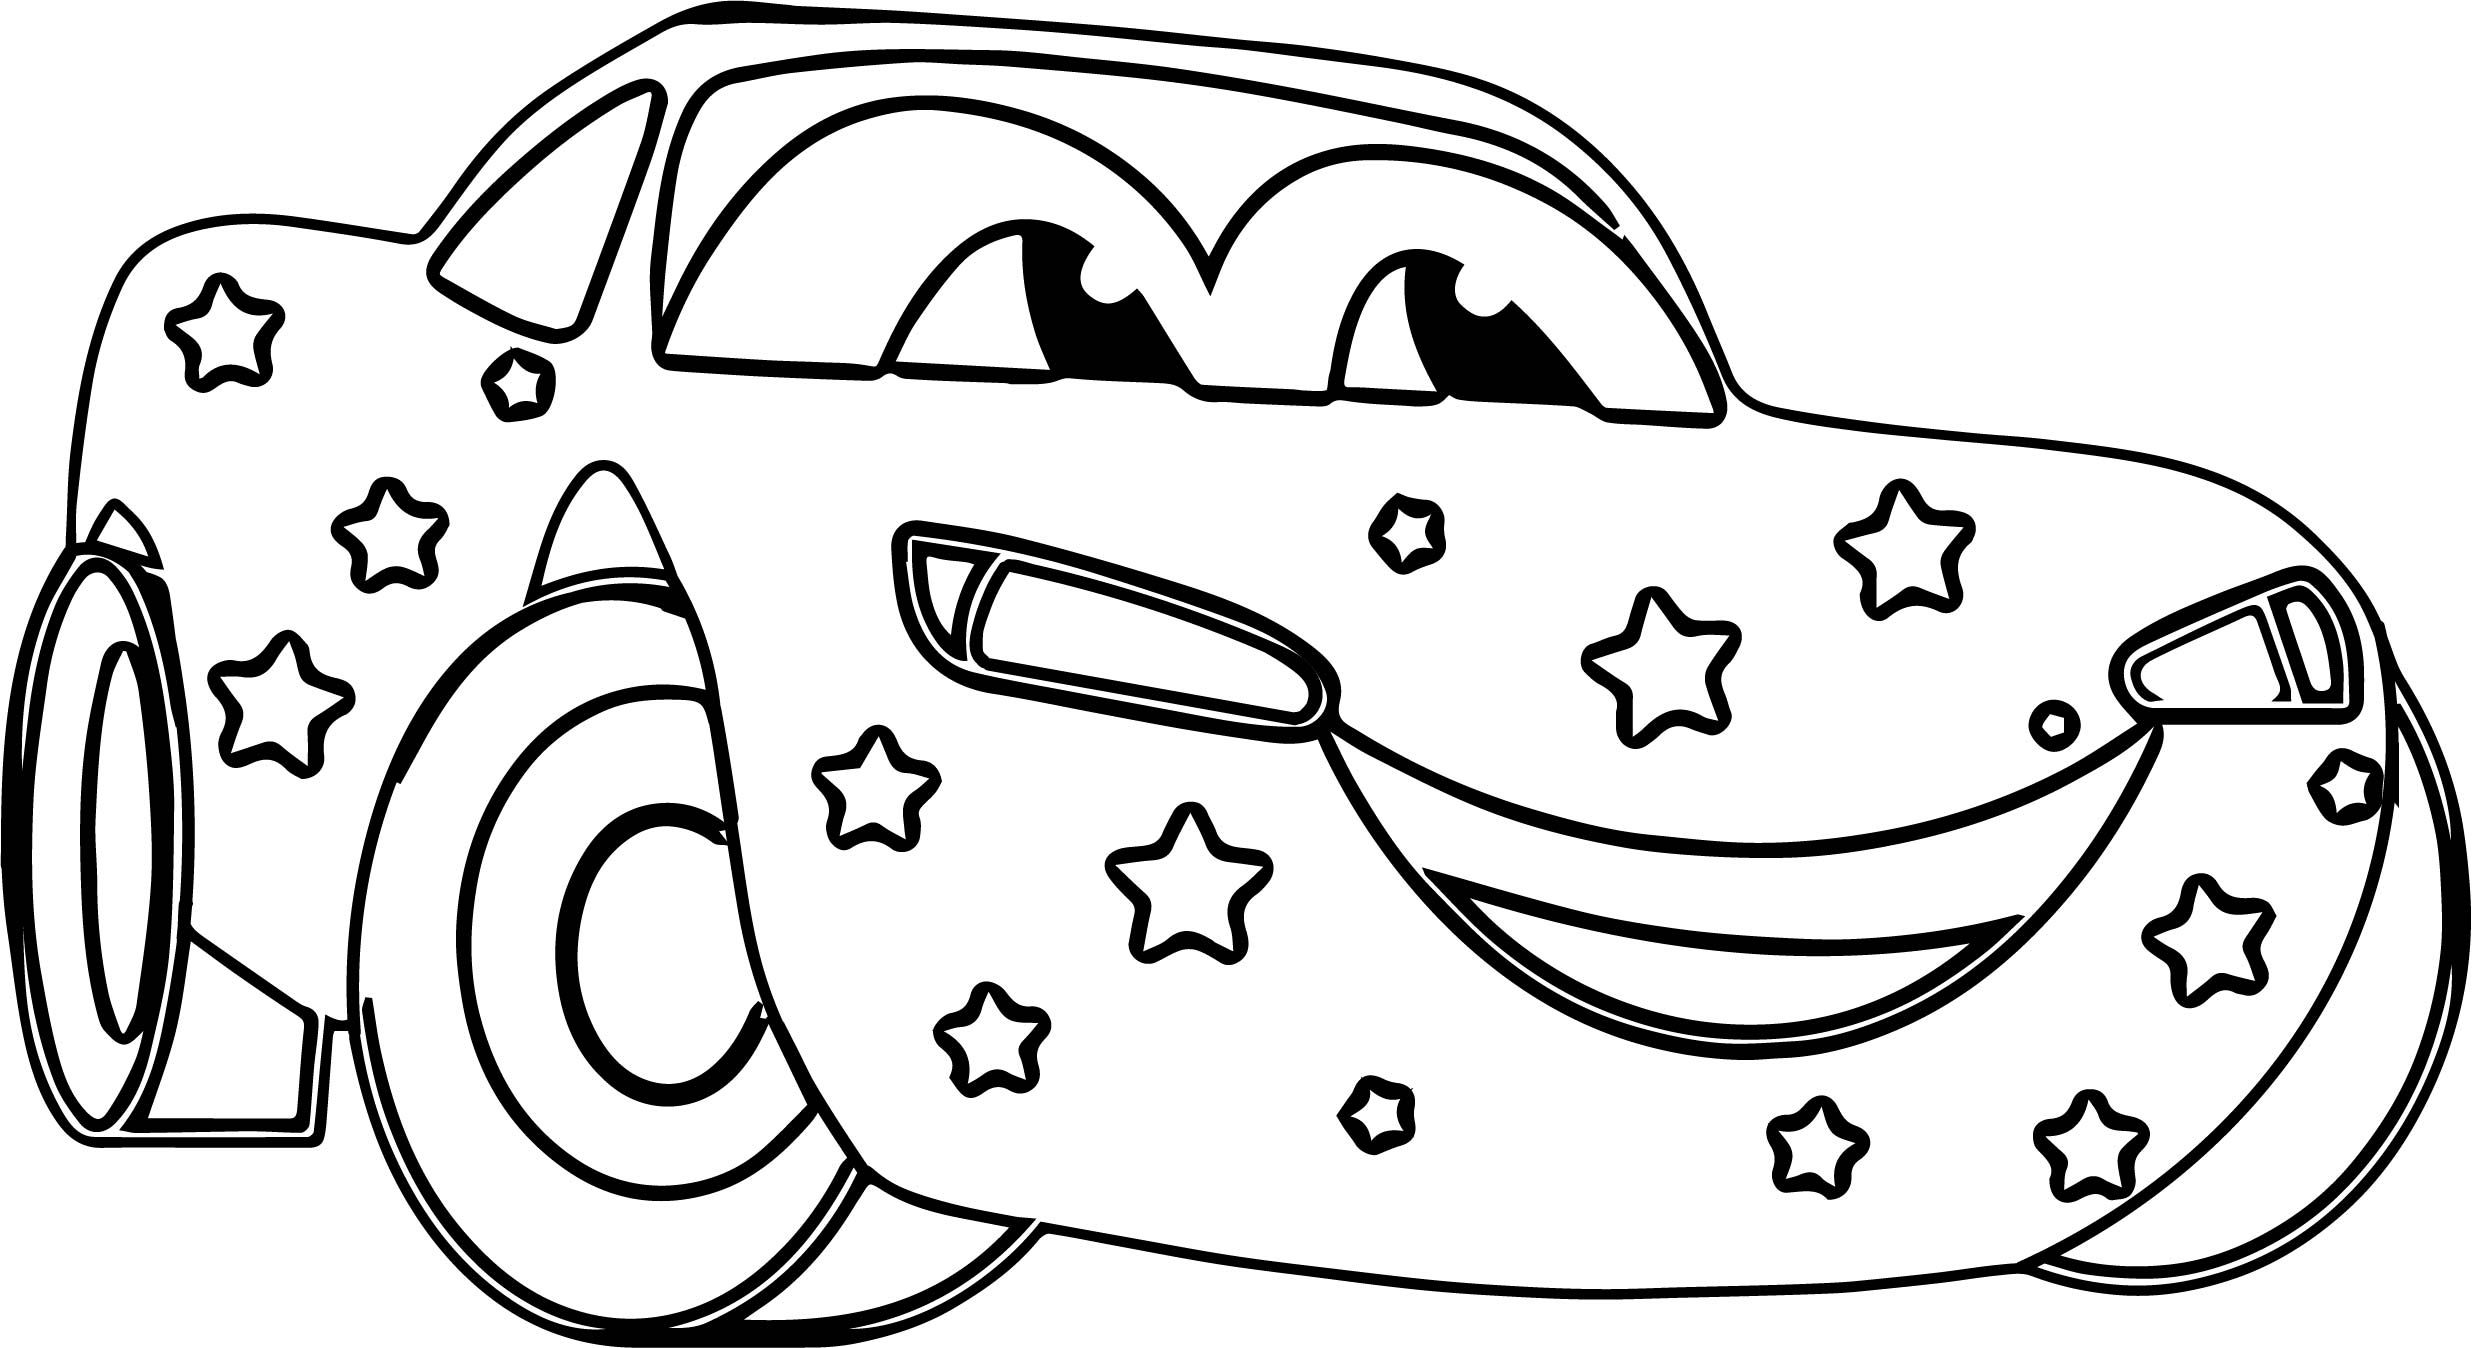 Awesome Star Disney Car Coloring Page Cars Coloring Pages Santa Coloring Pages Coloring Pages